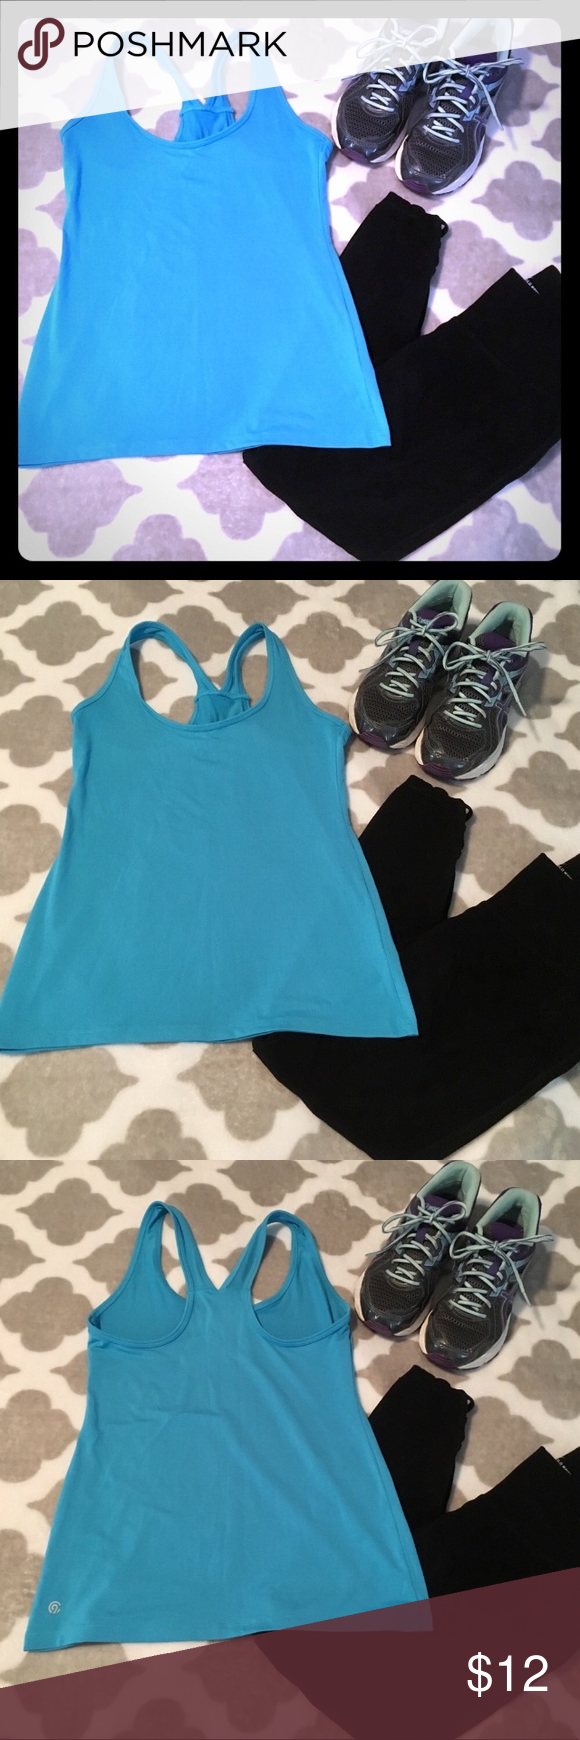 3/20 like new workout top Soft and adorable workout top